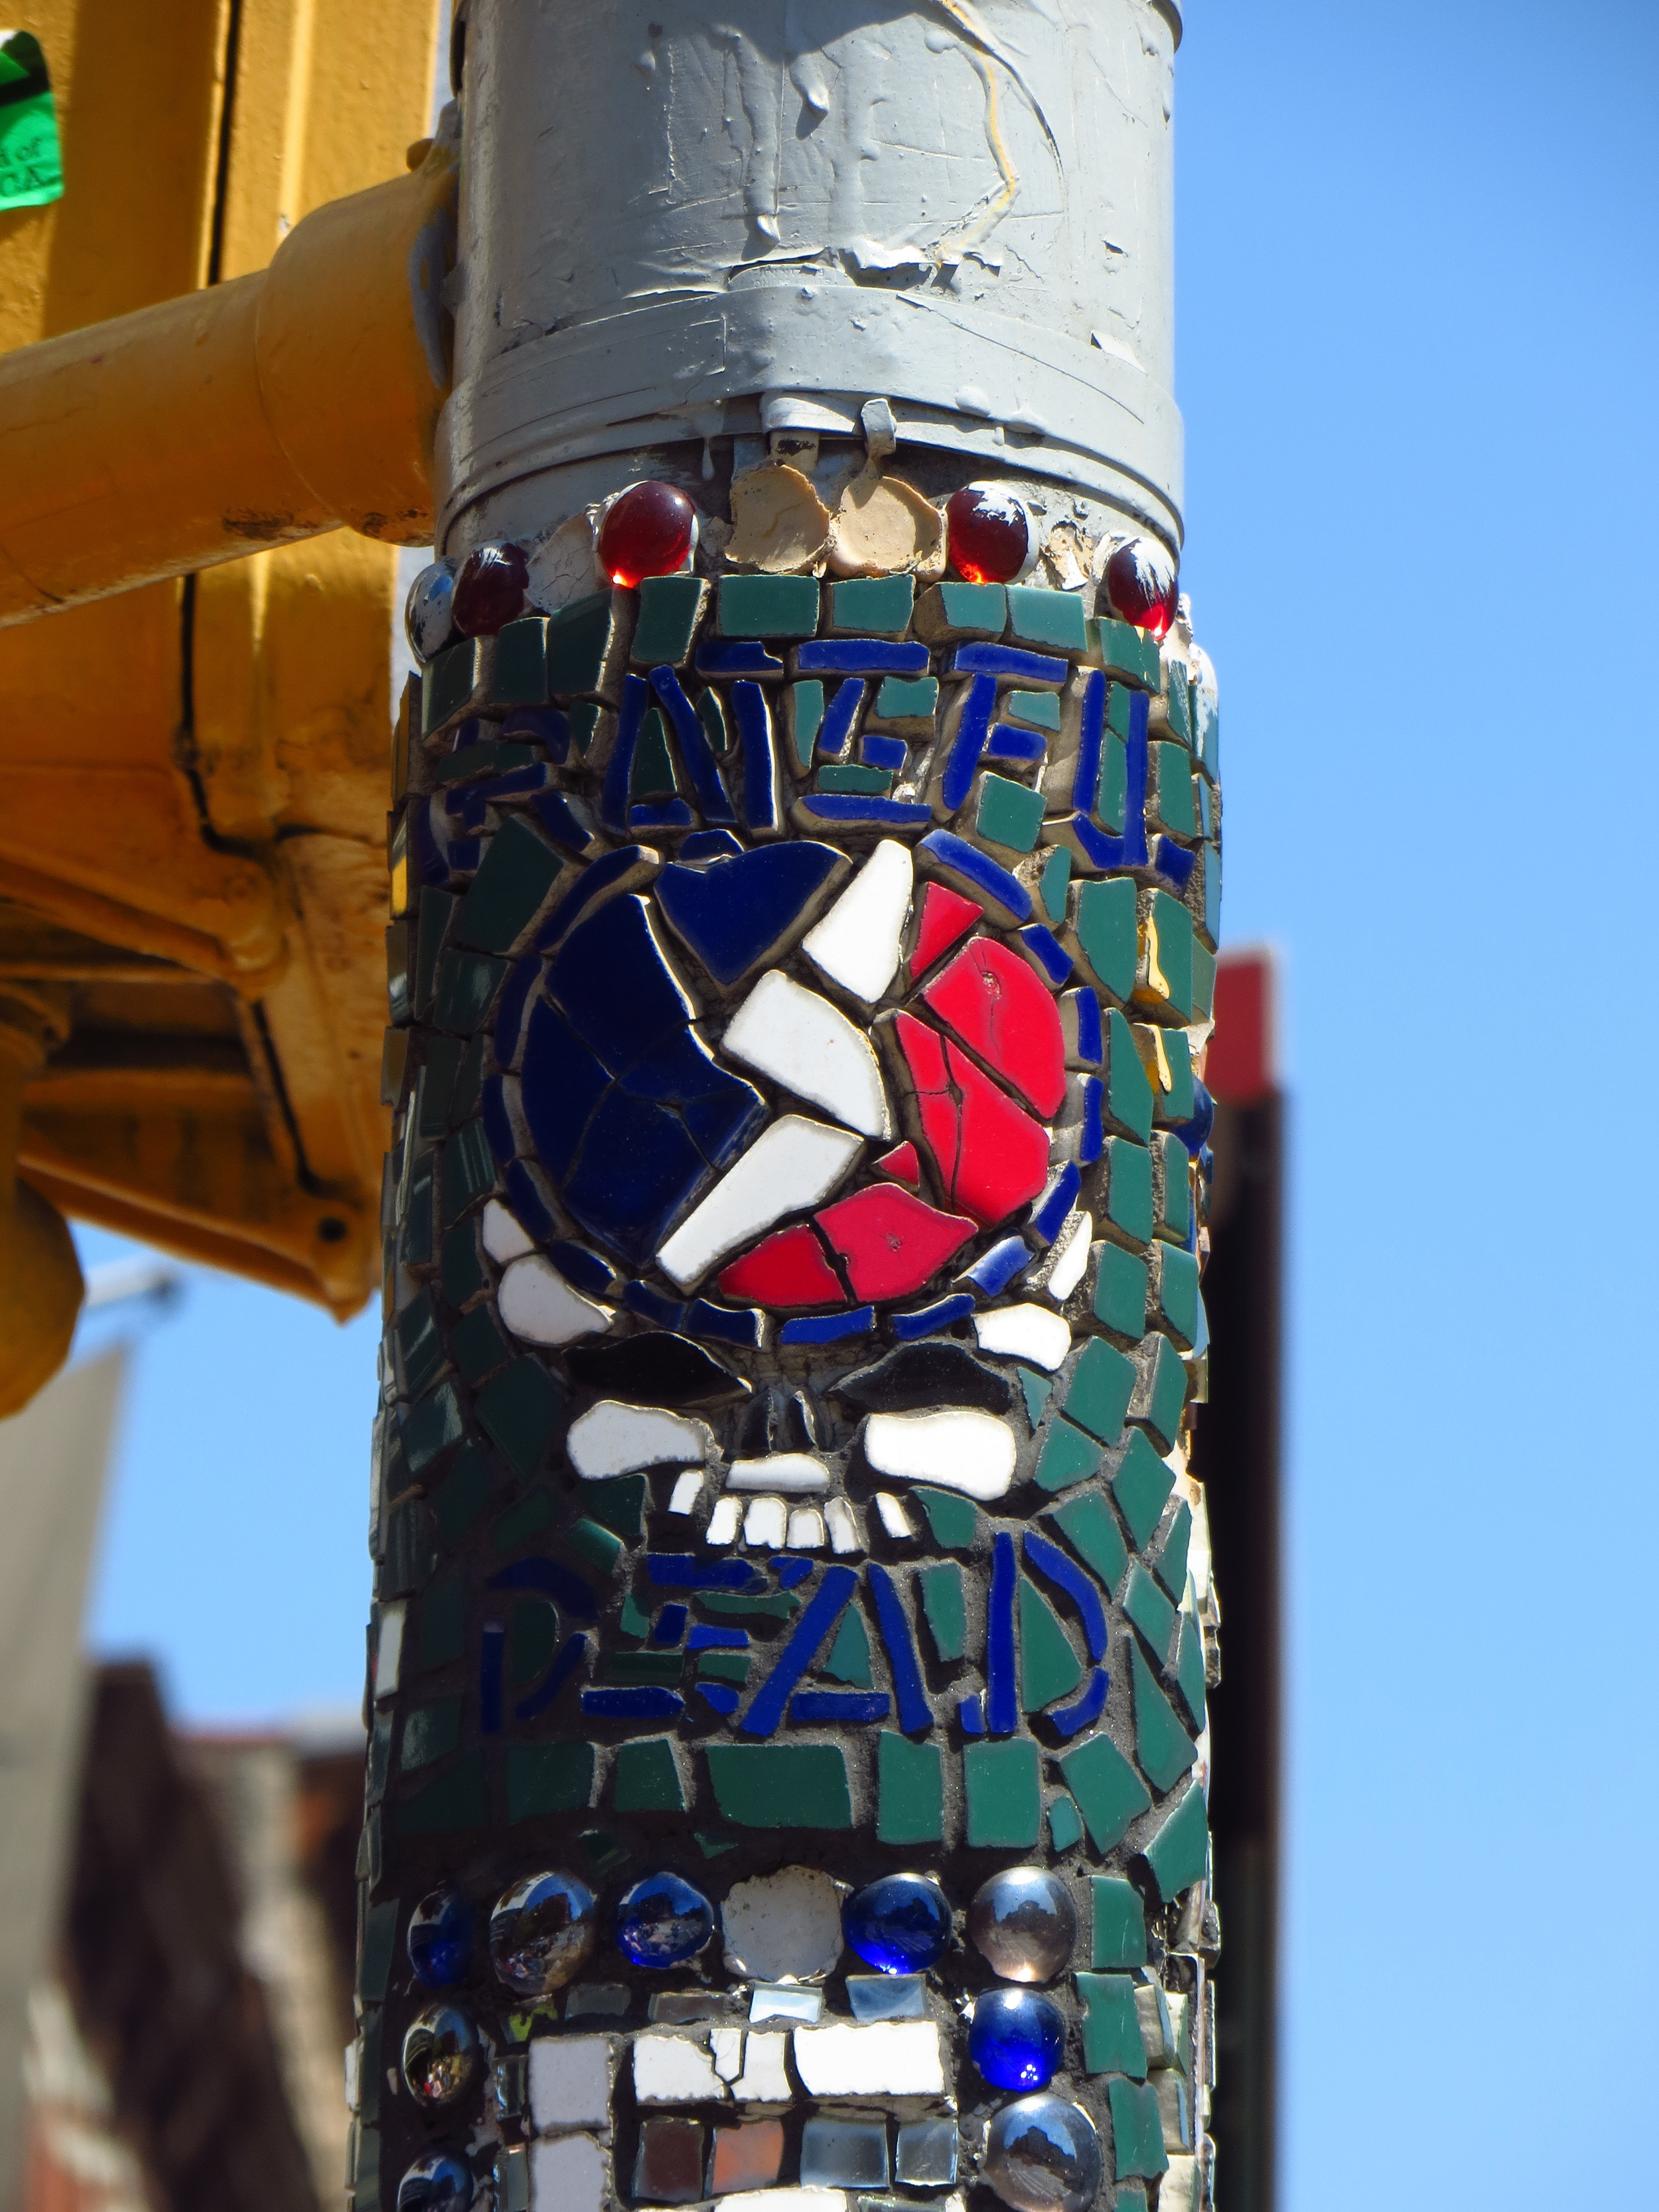 Mosaic signpost by former sight of Fillmore East concert hall